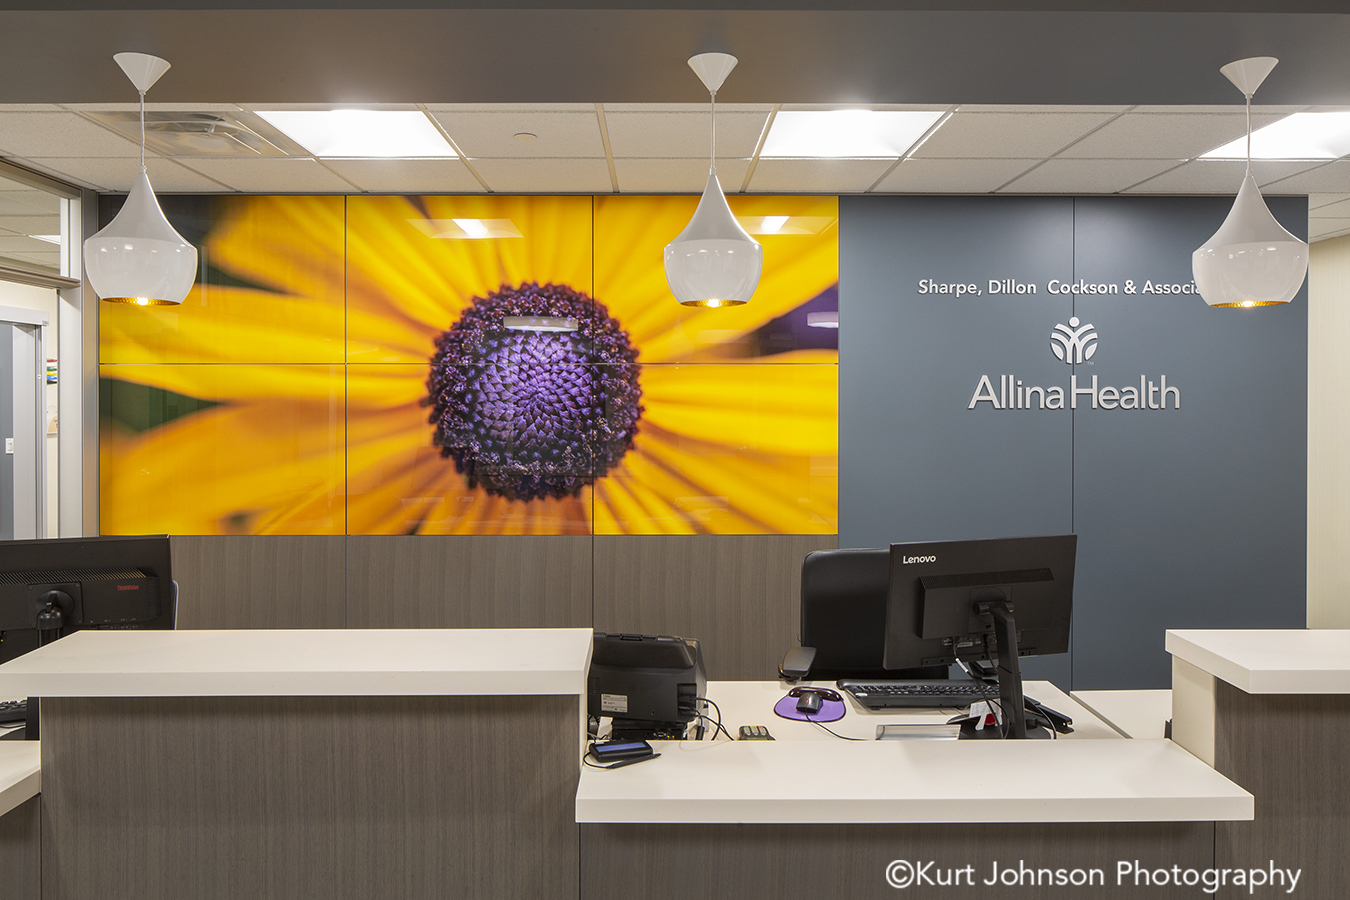 Allina Health art install healthcare installation orange flowers framed design DIRTT willow glass yellow flower botanical imagery healthcare